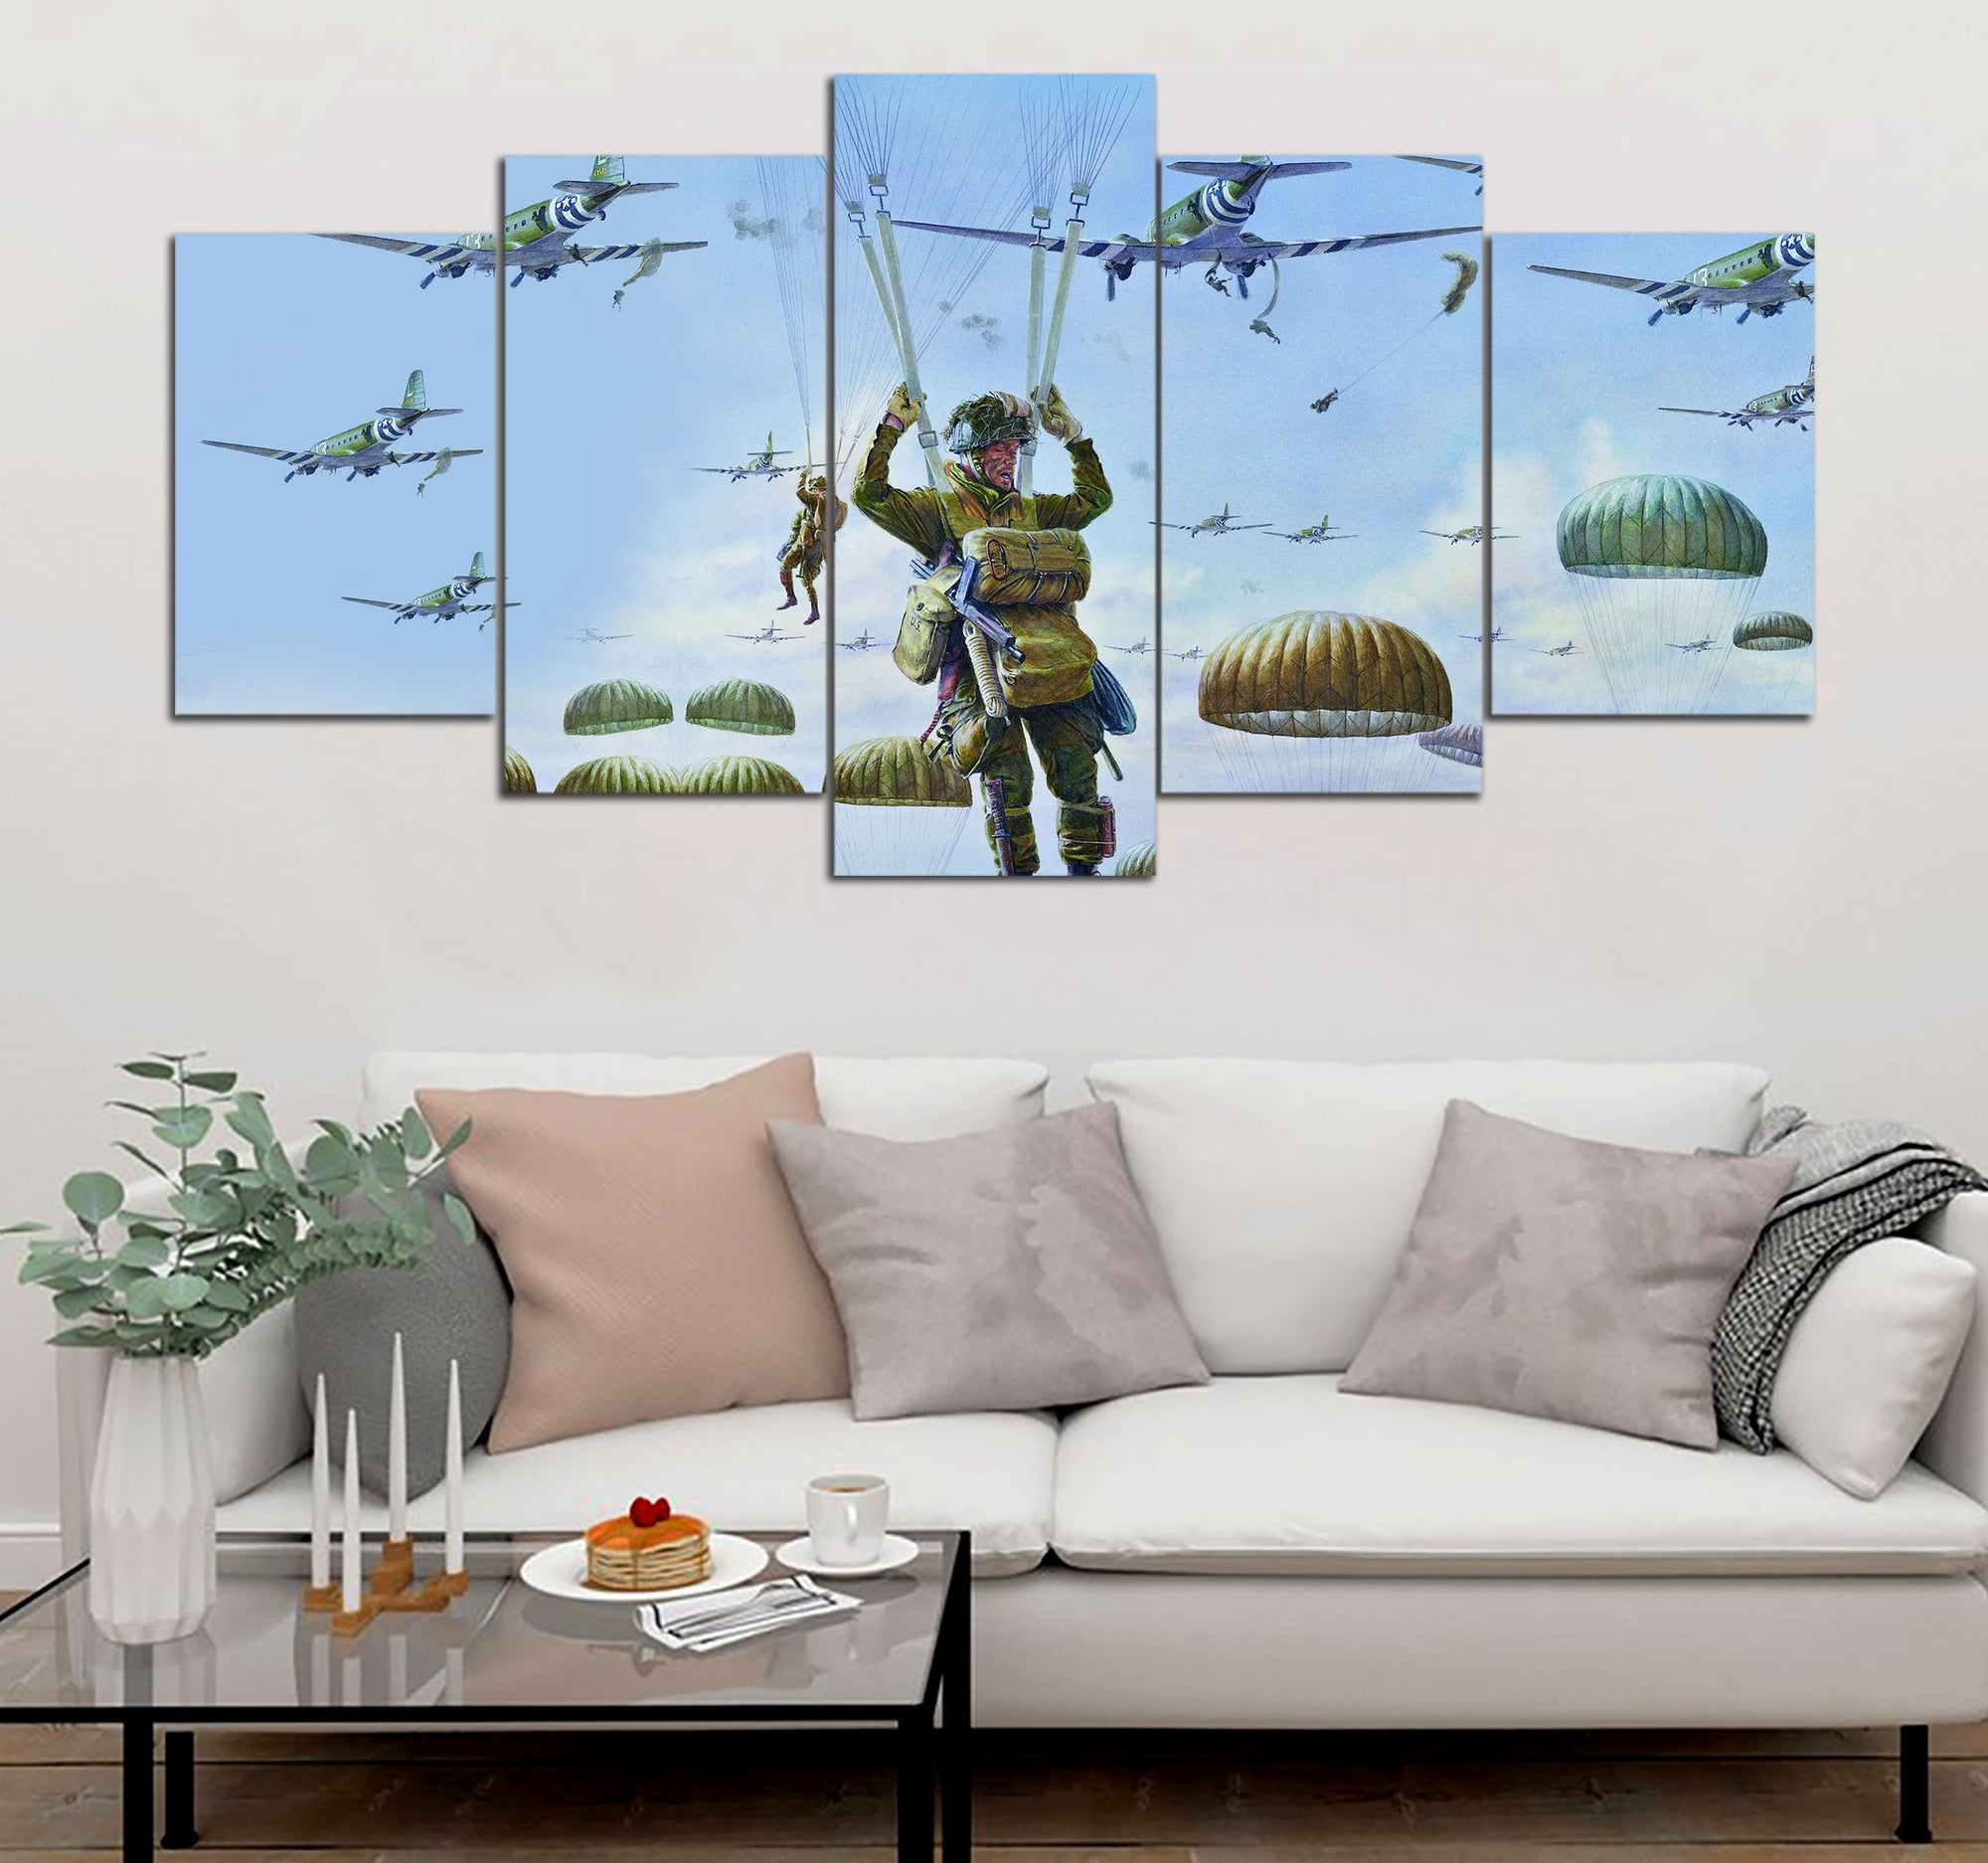 5-piece Big Paratrooper On Sky Printed Canvas Wall Art